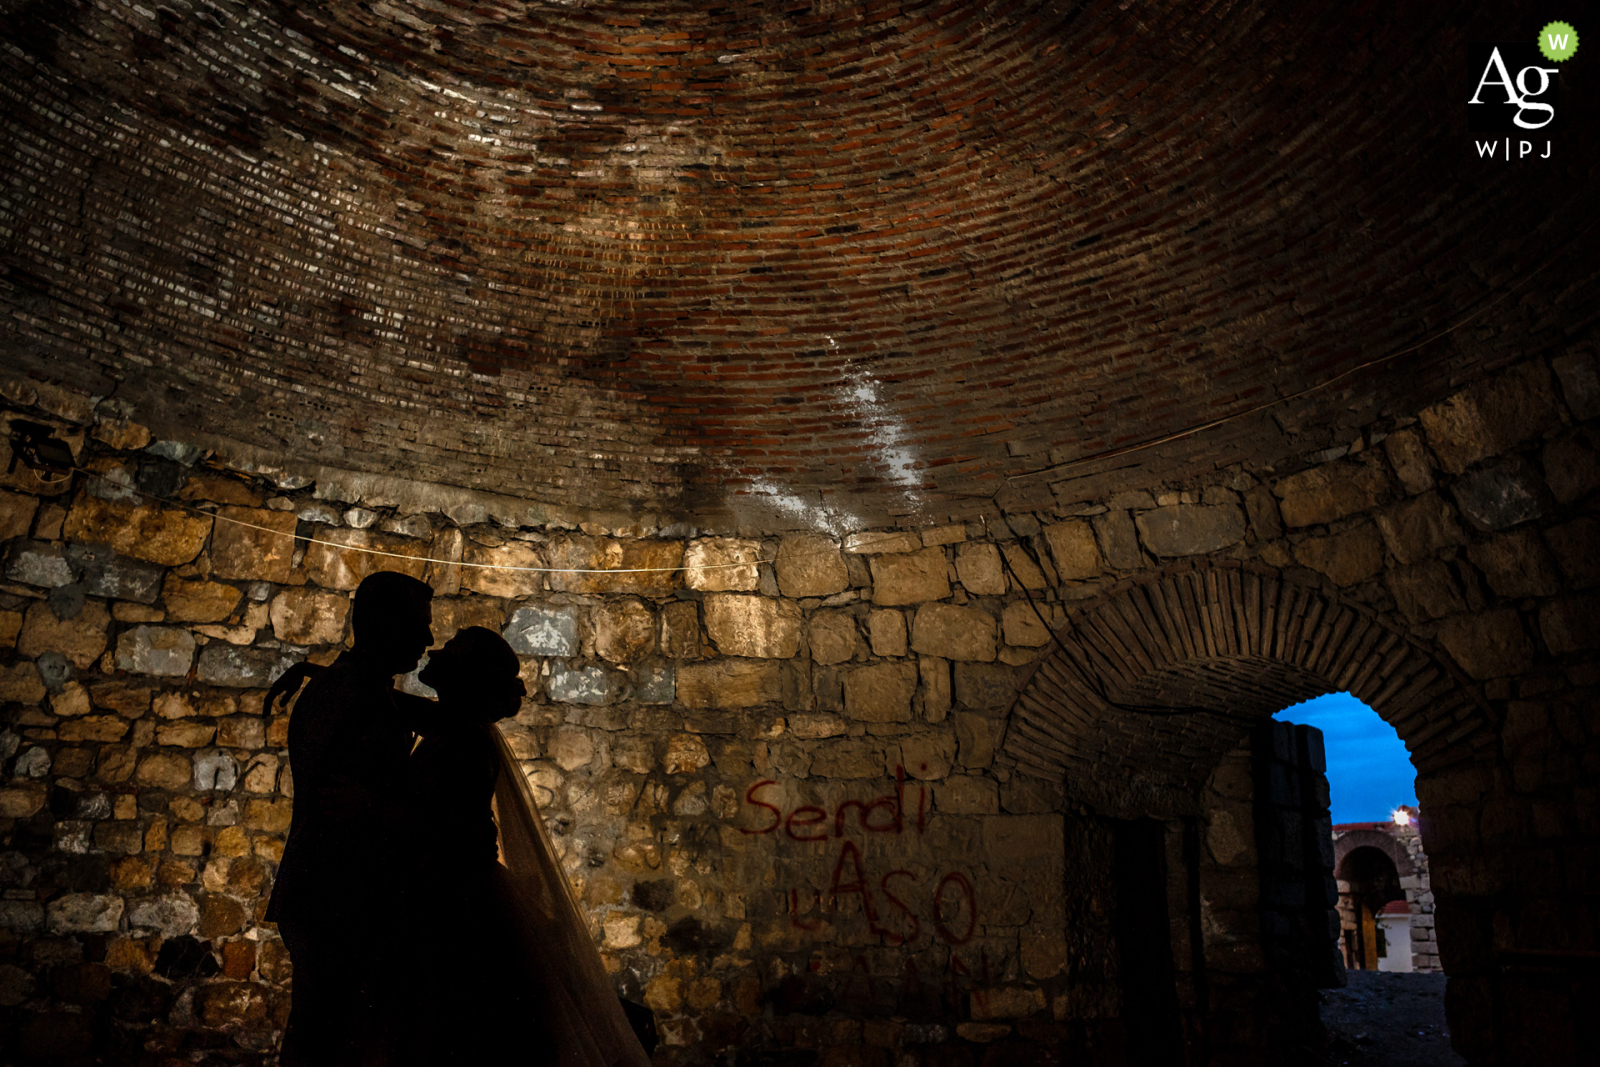 Seferihisar wedding couple portrait shoot of them silhouetted against a stone wall in Izmir